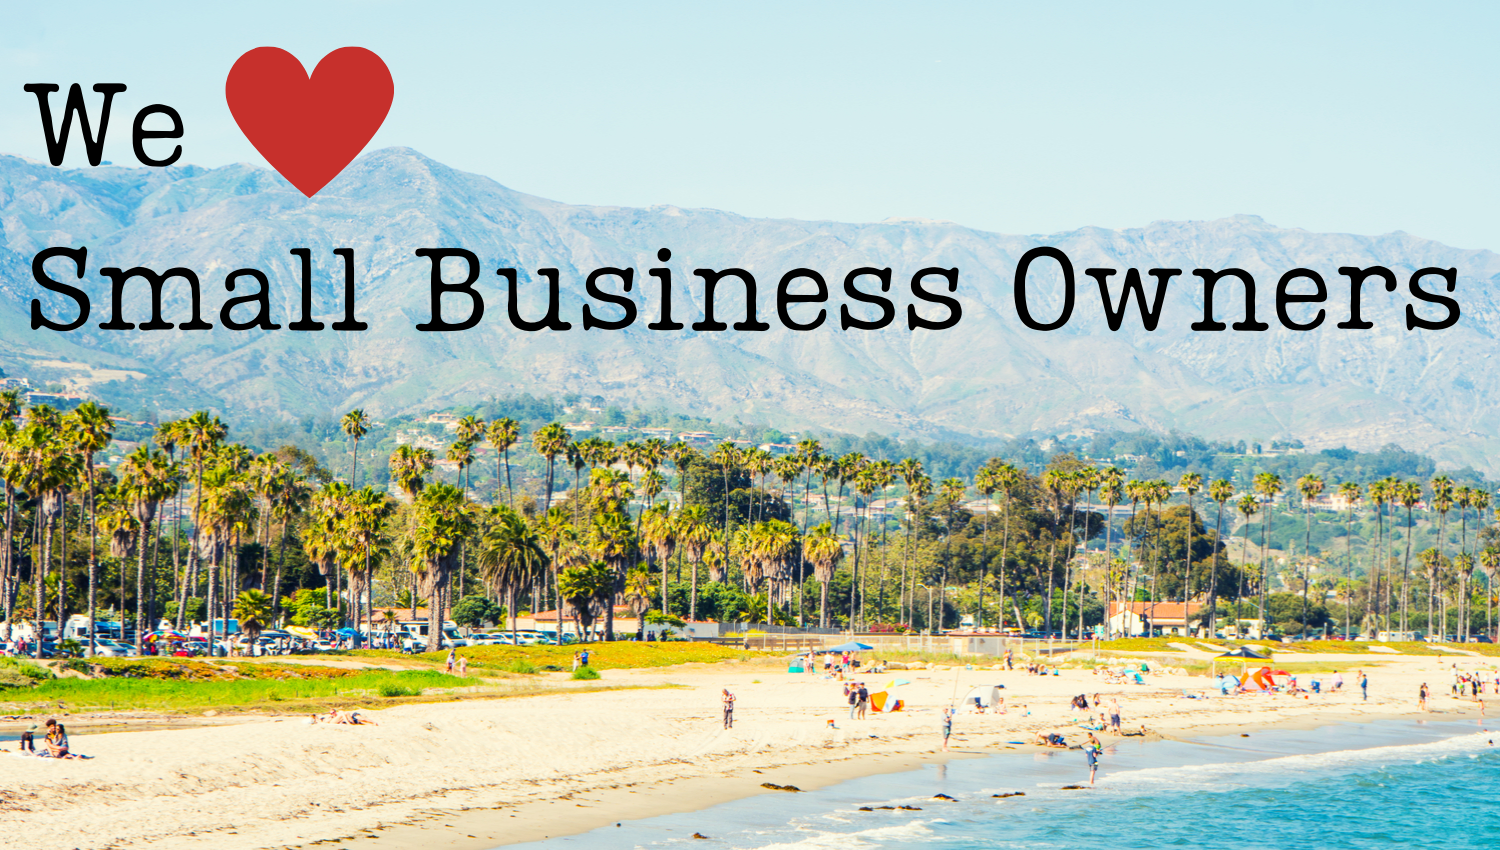 Business Owner Webpage Banner